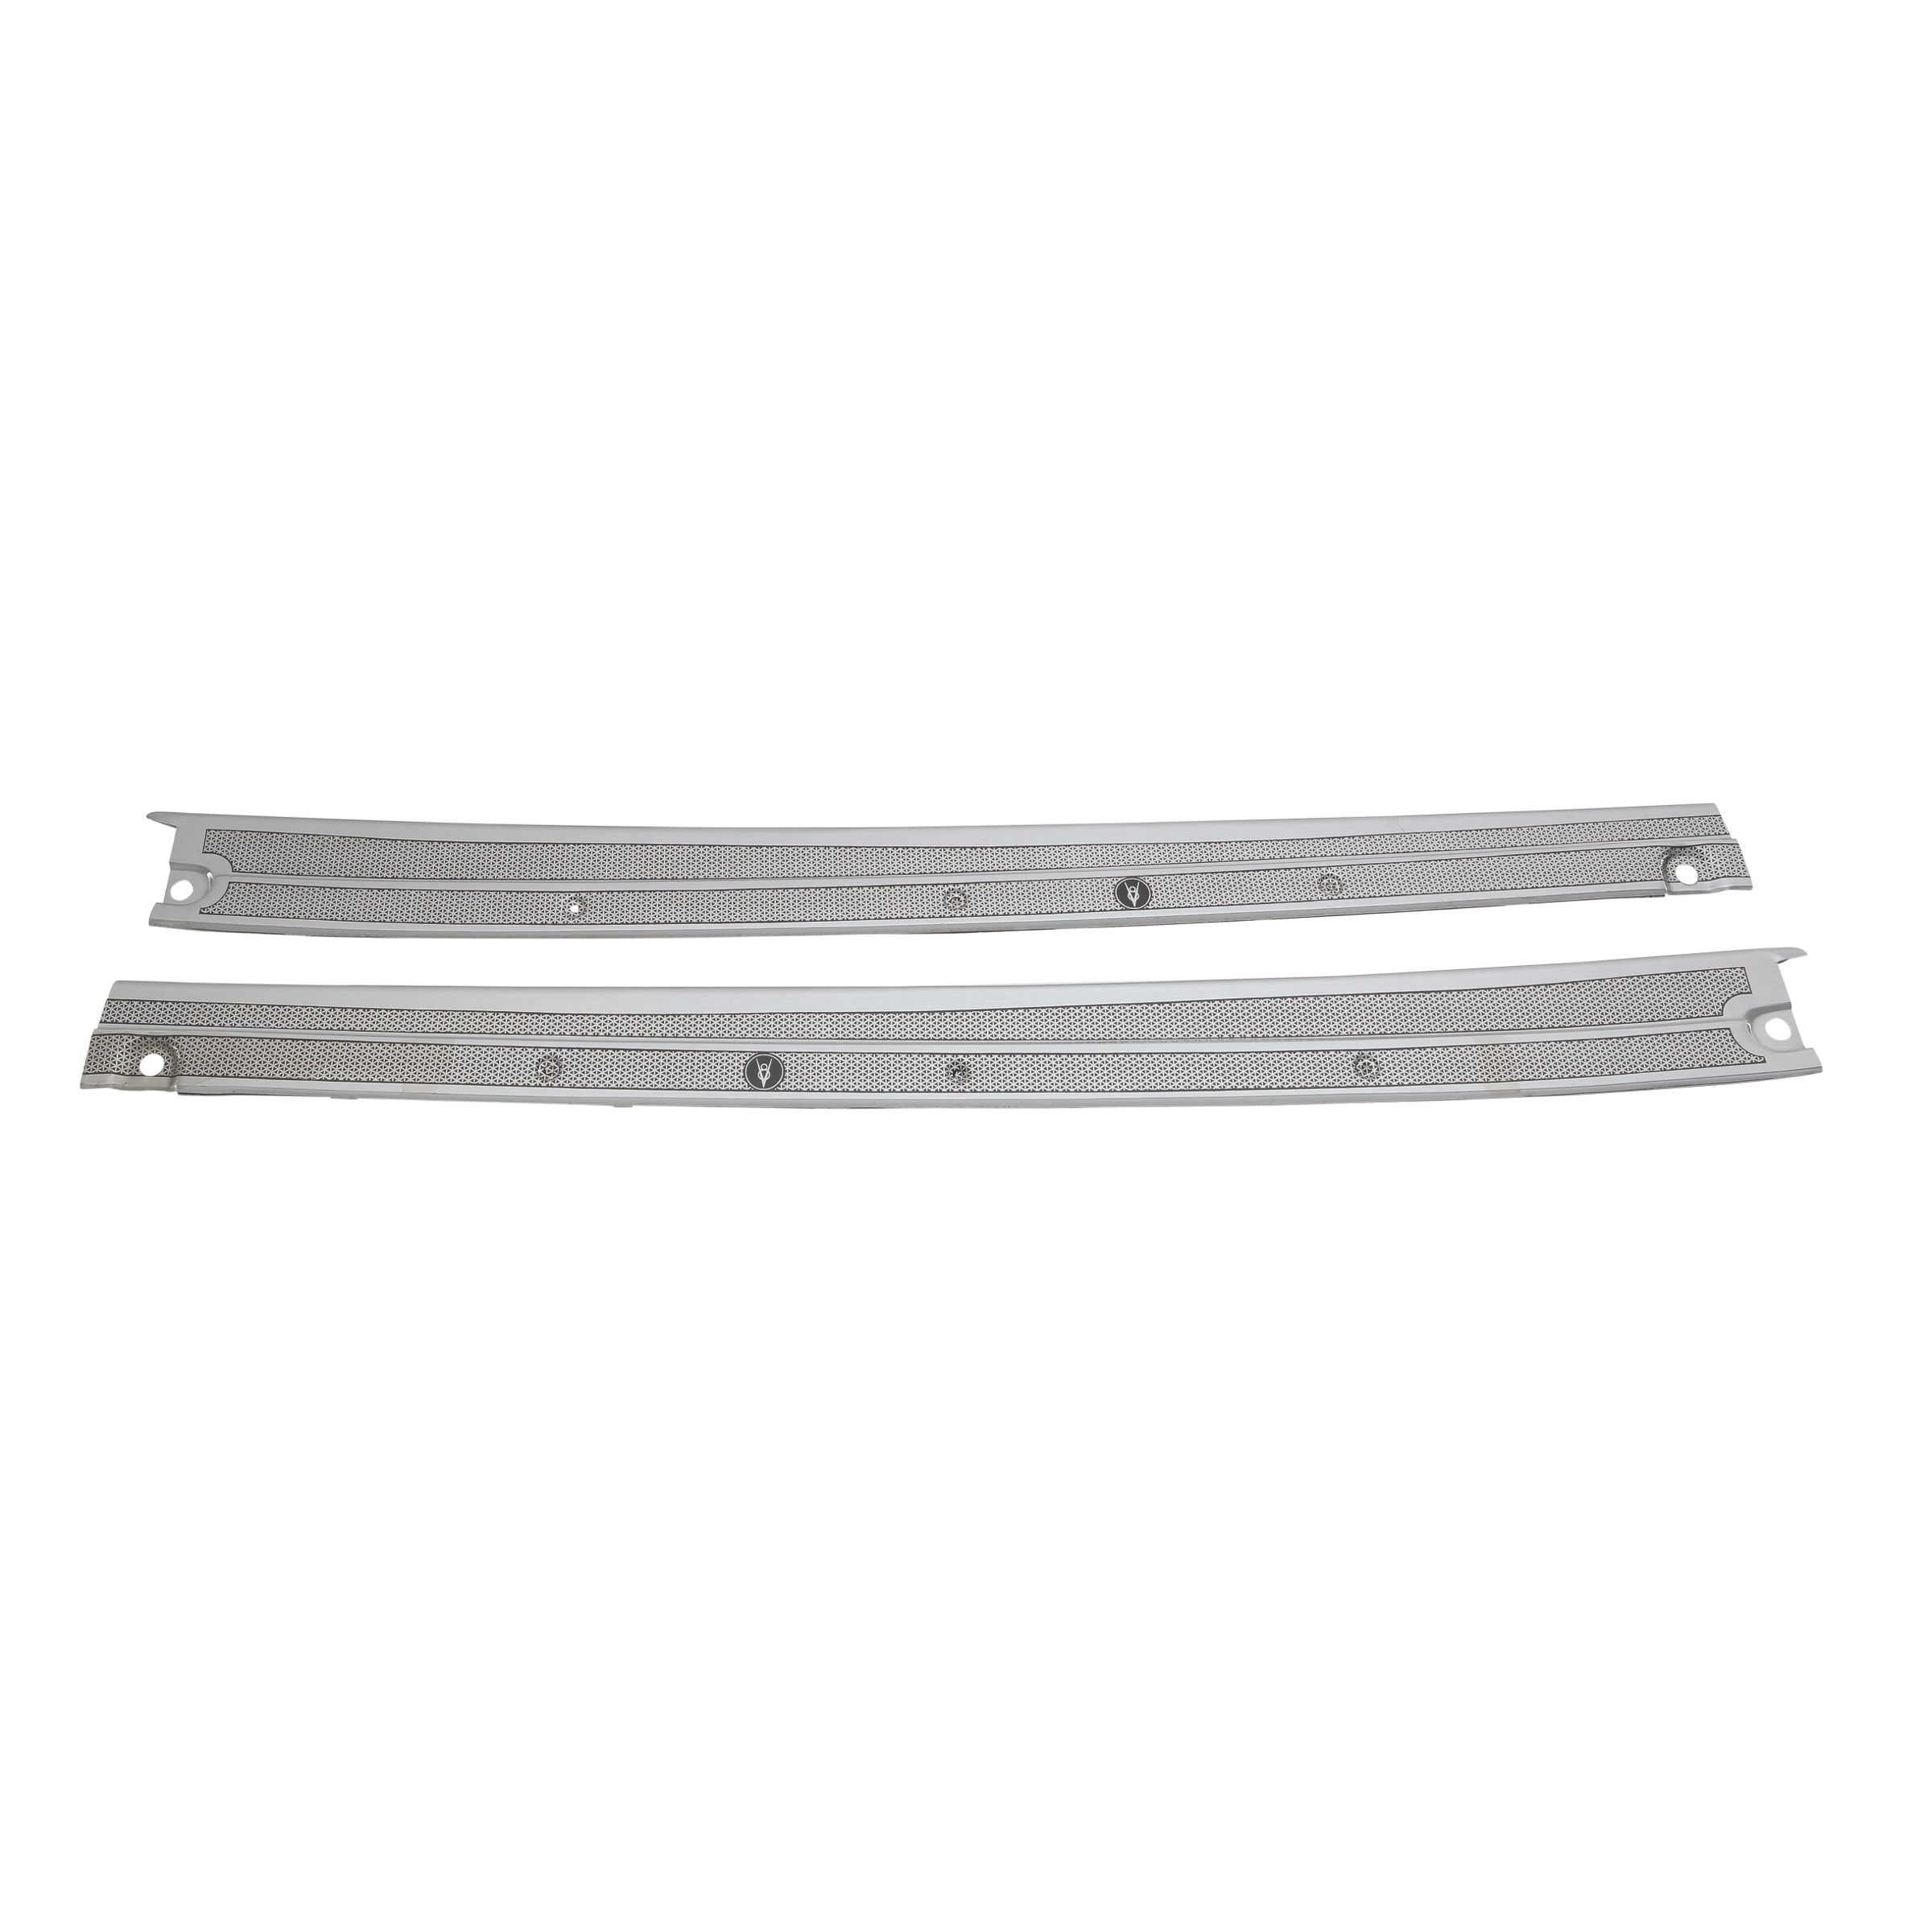 Door Scuff (Sill) Plates • 1935-36 Ford Convertible Sedan (Front)